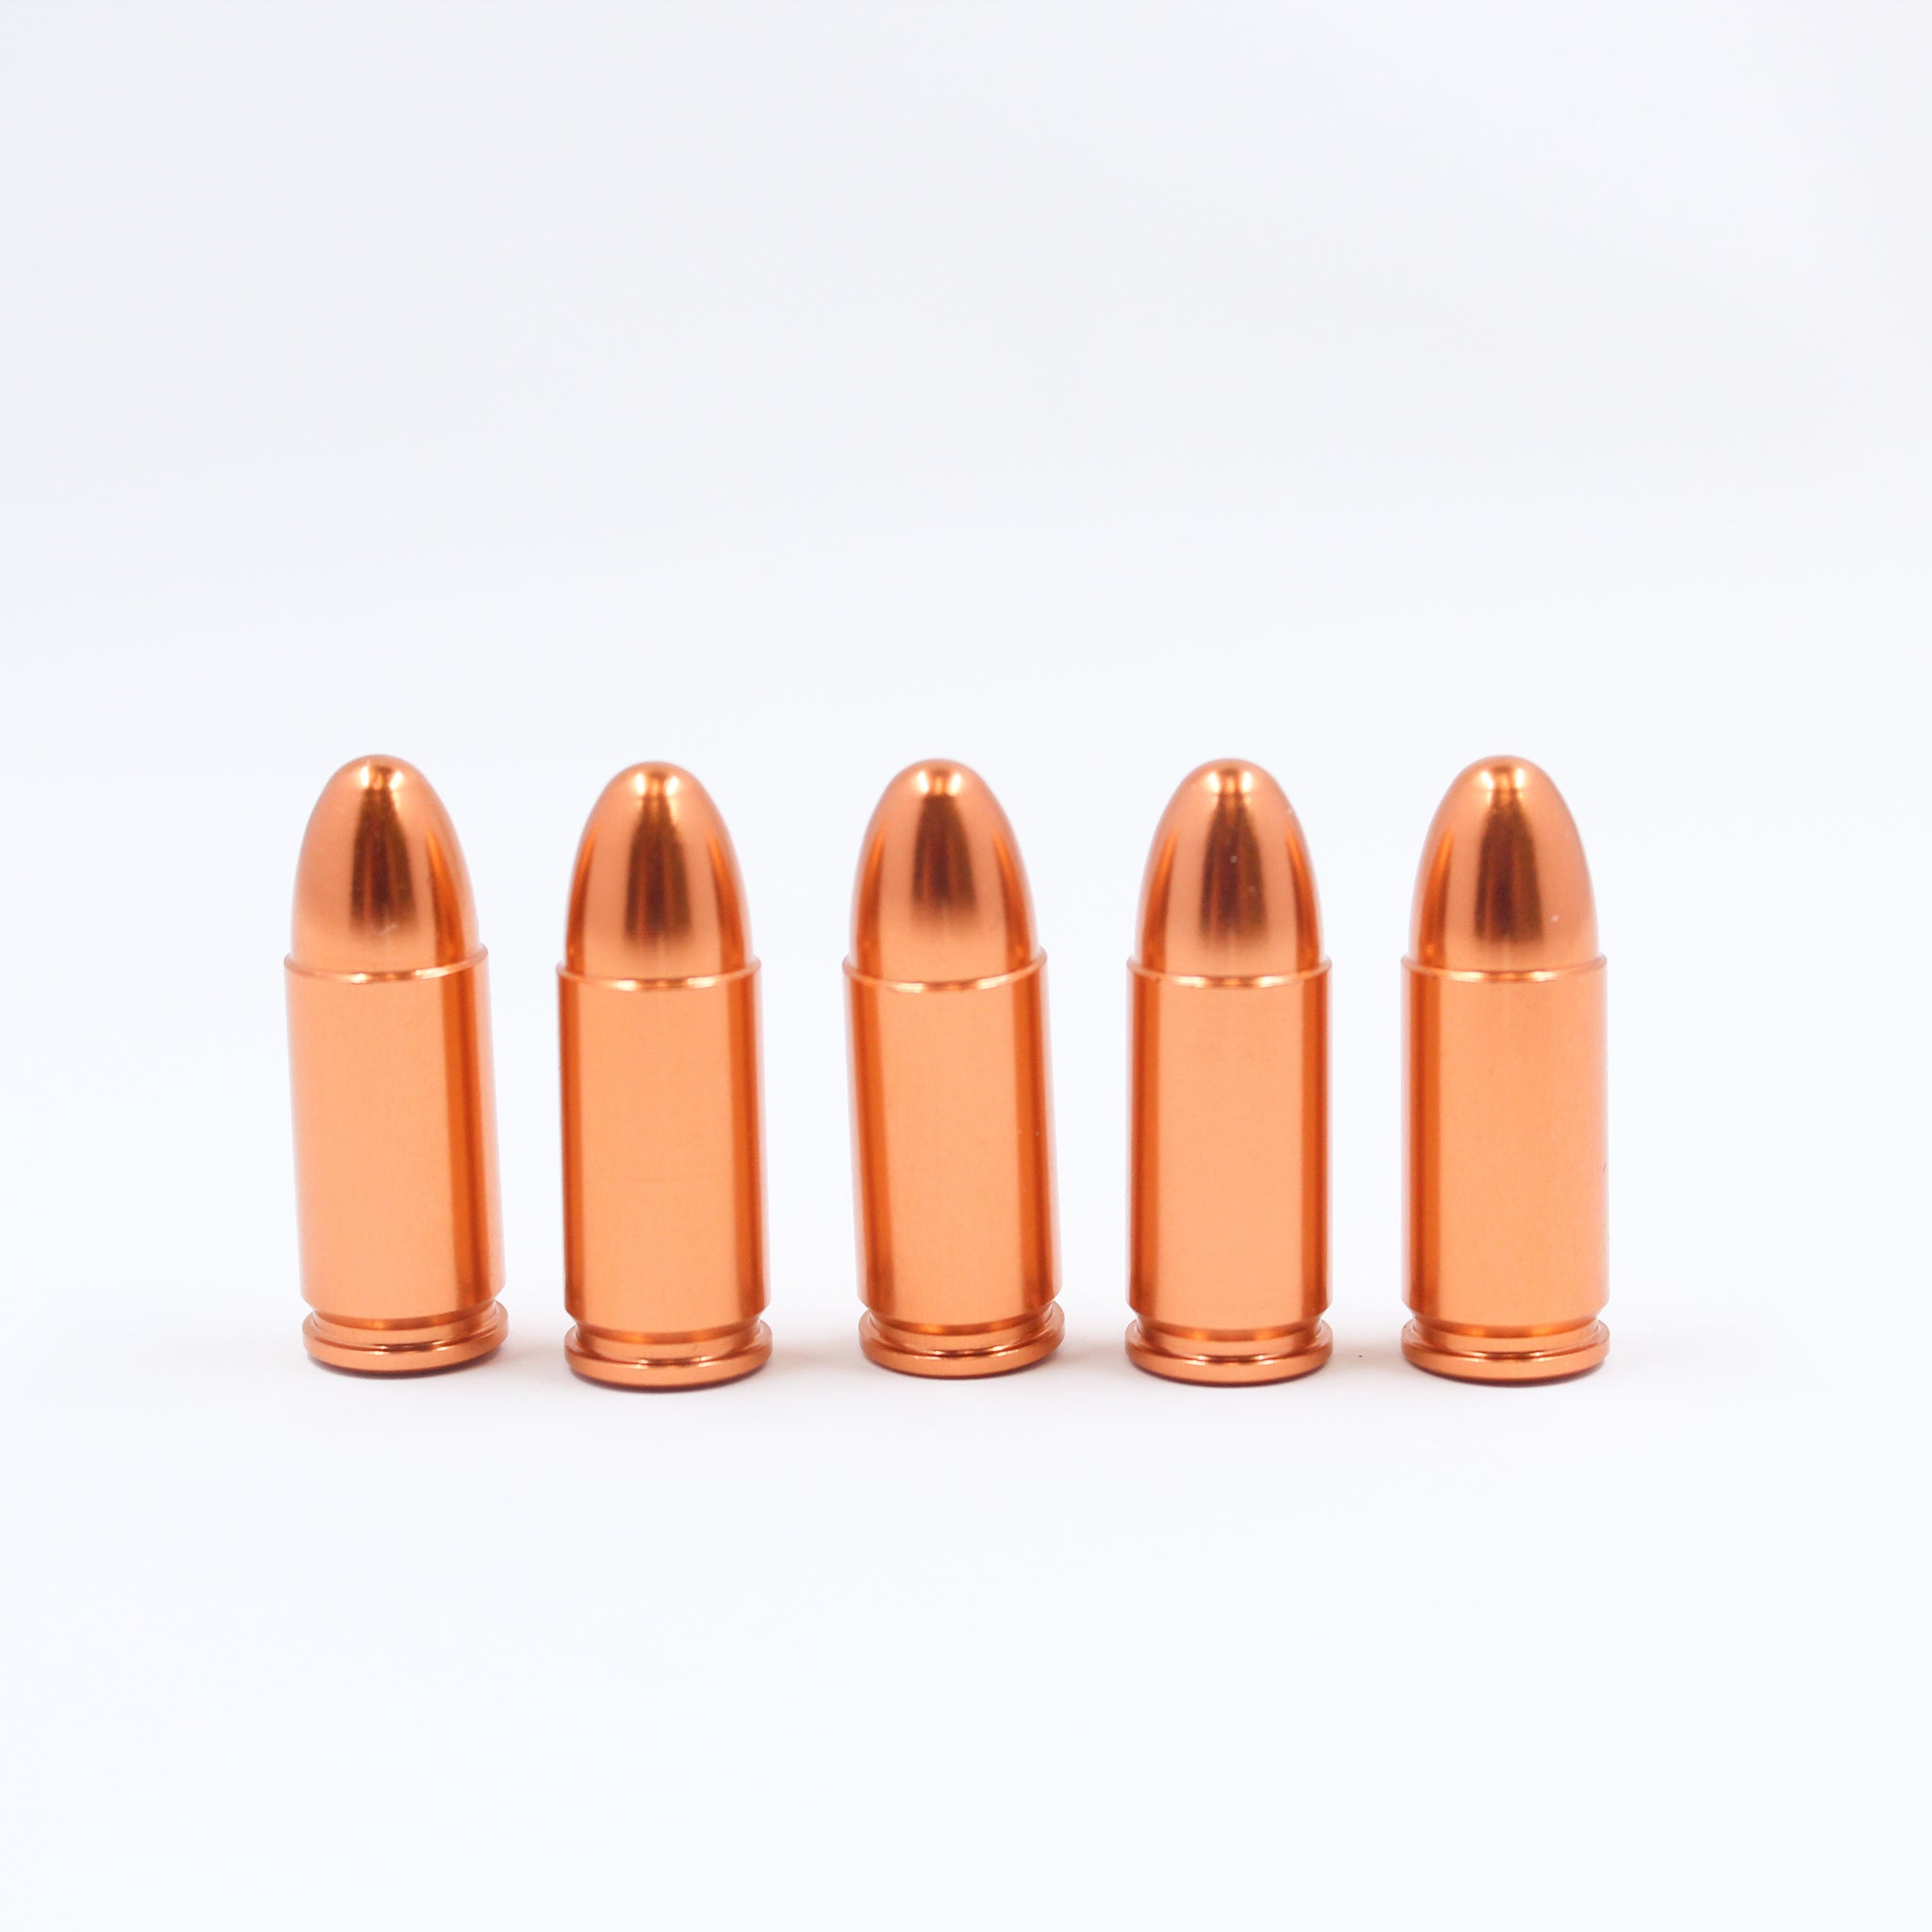 Pink Rhino - Snap Caps Dummy Rounds - 9mm Luger - 5 pack